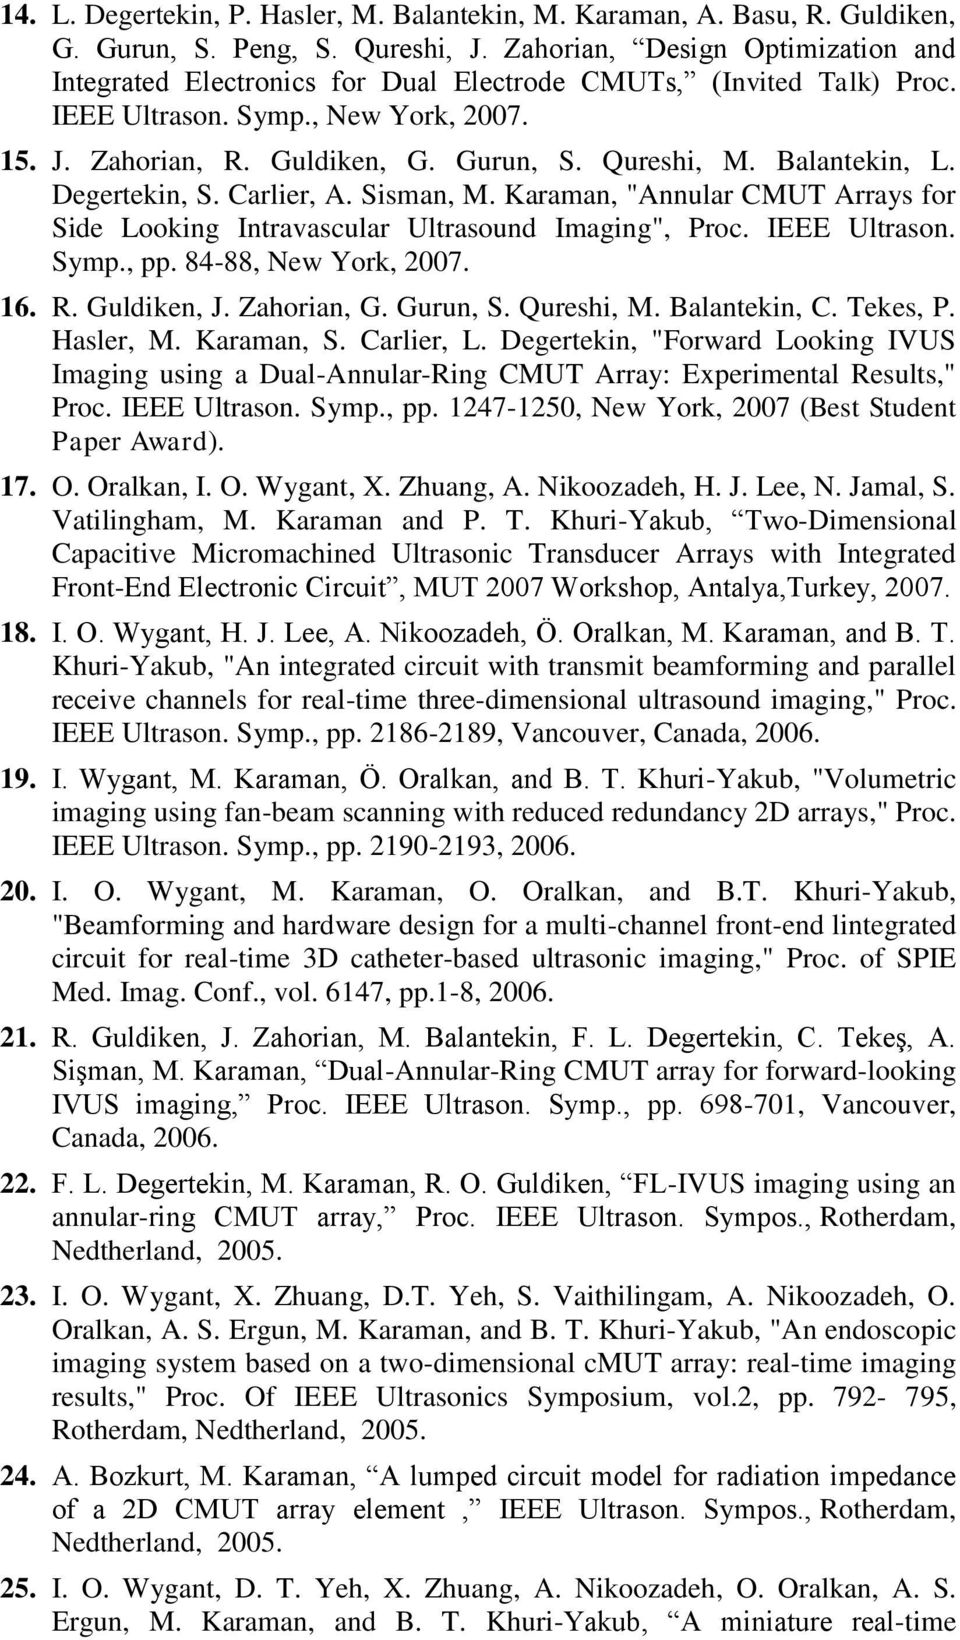 "Balantekin, L. Degertekin, S. Carlier, A. Sisman, M. Karaman, ""Annular CMUT Arrays for Side Looking Intravascular Ultrasound Imaging"", Proc. IEEE Ultrason. Symp., pp. 84-88, New York, 2007. 16. R."